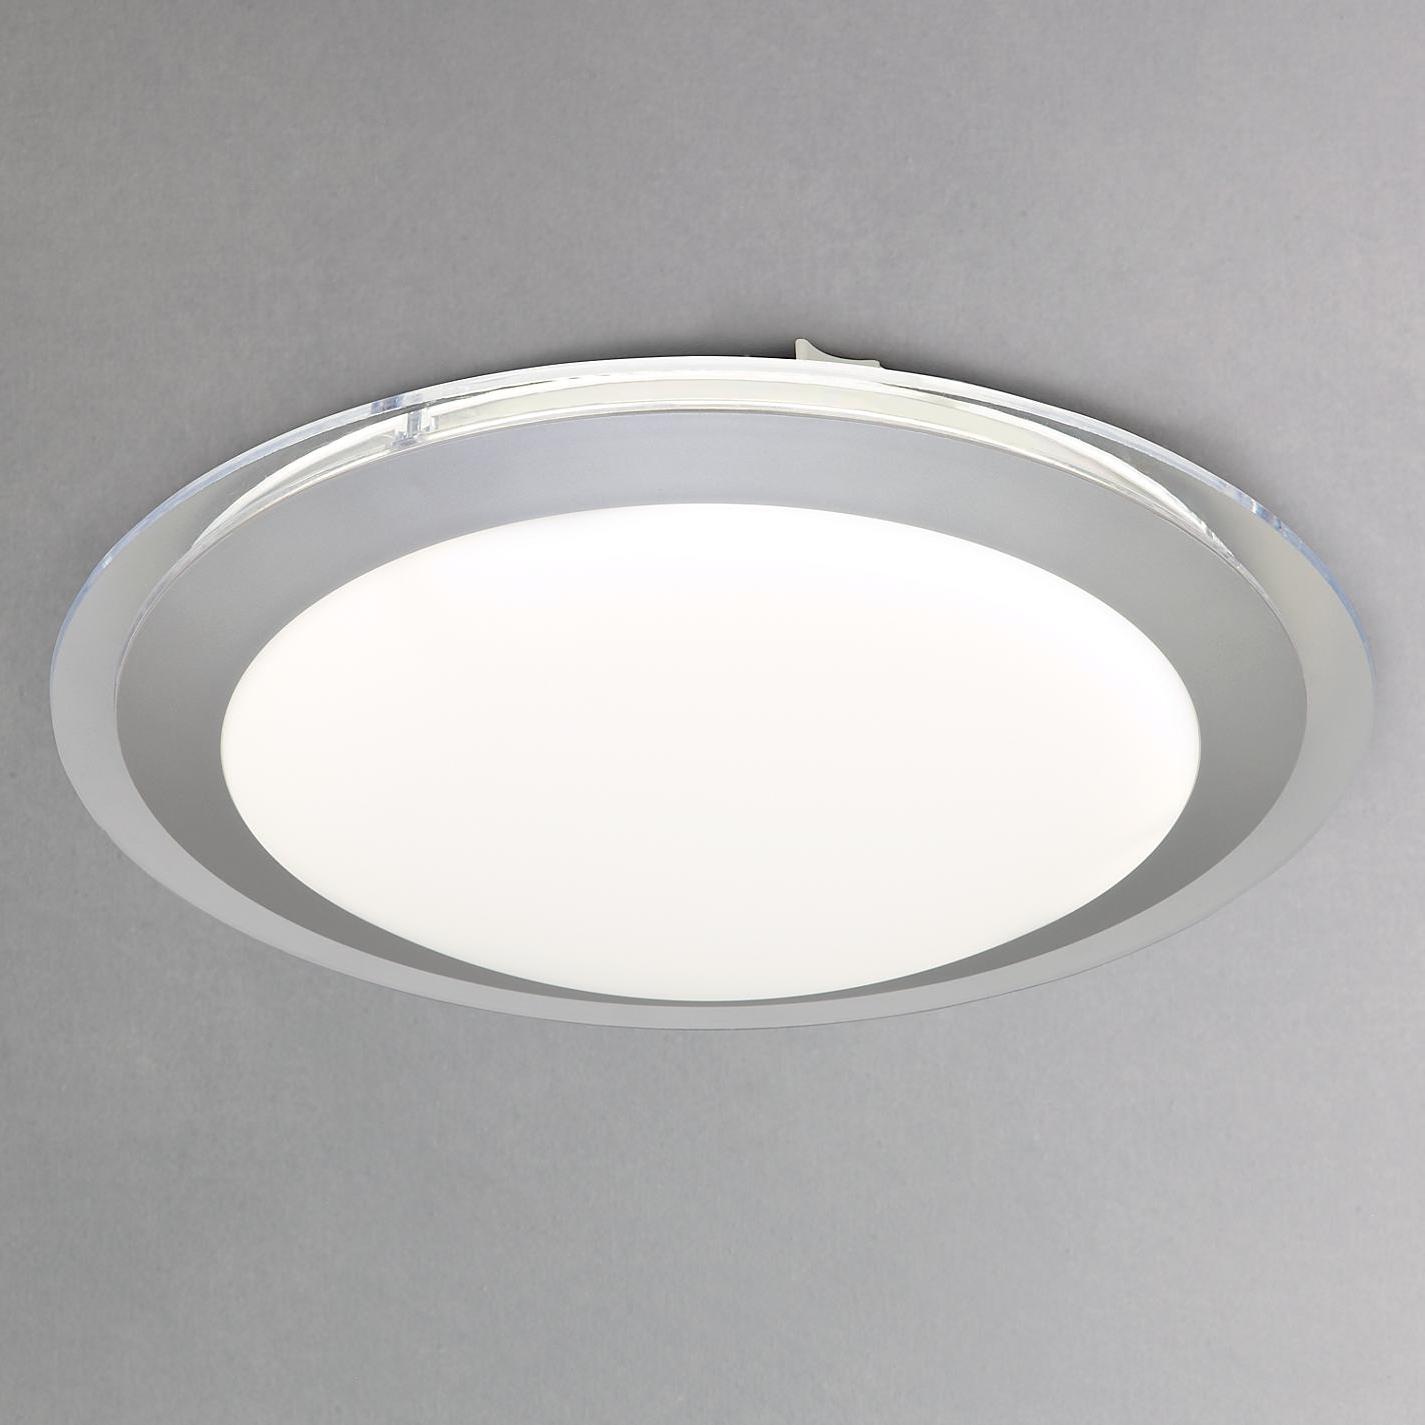 2019 John Lewis Bathroom Ceiling Lights Lighting Led Wall Uk Light With John Lewis Outdoor Ceiling Lights (View 8 of 20)